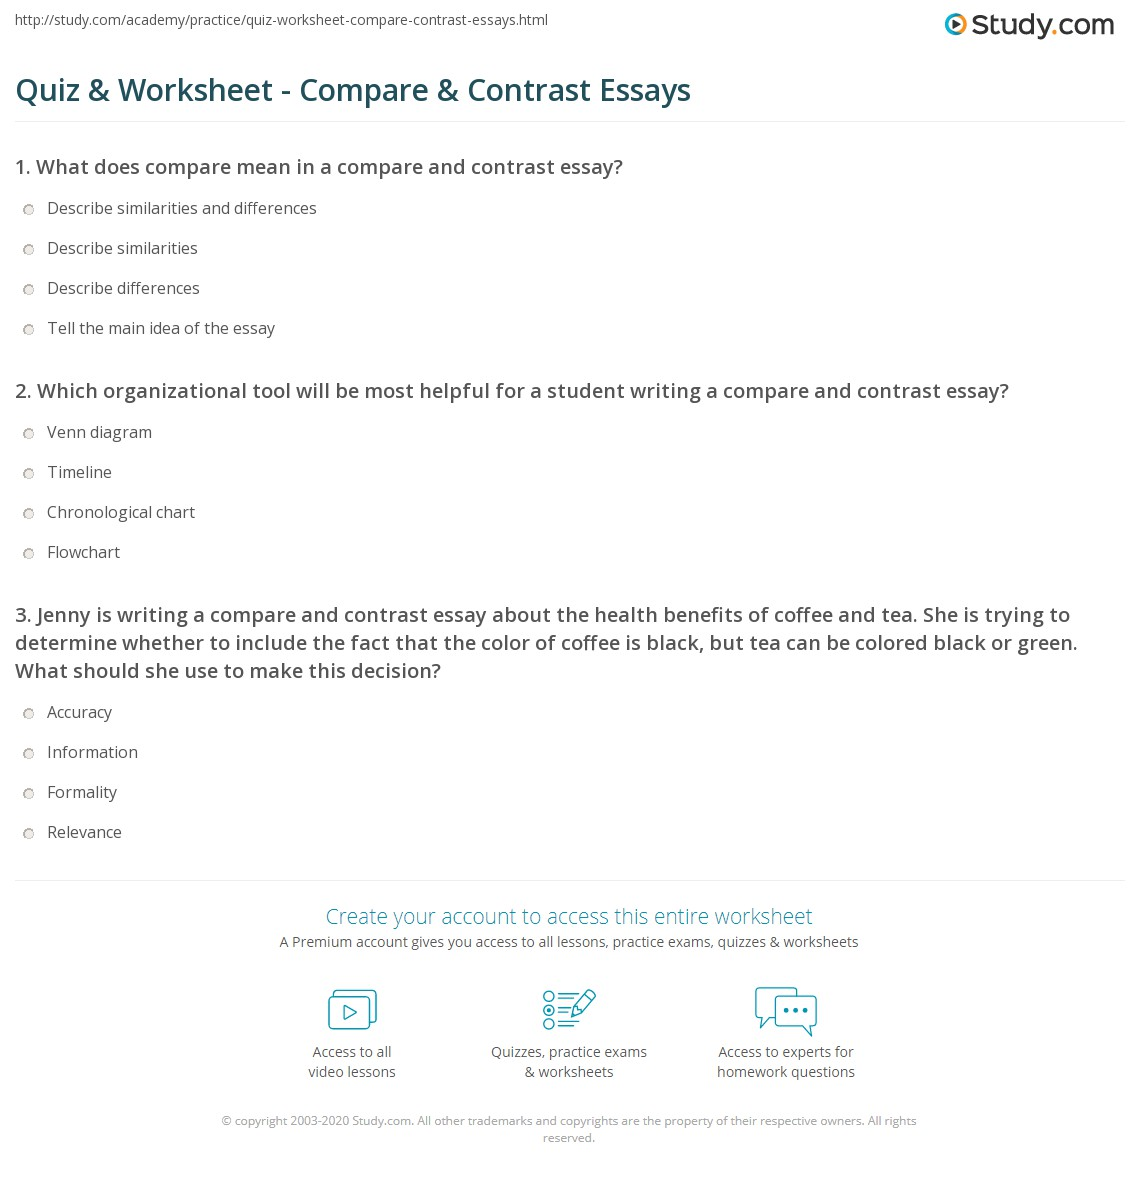 comparison and contrast essay topics chapter comparison contrast  quiz worksheet compare contrast essays com print compare contrast essay definition topics examples worksheet